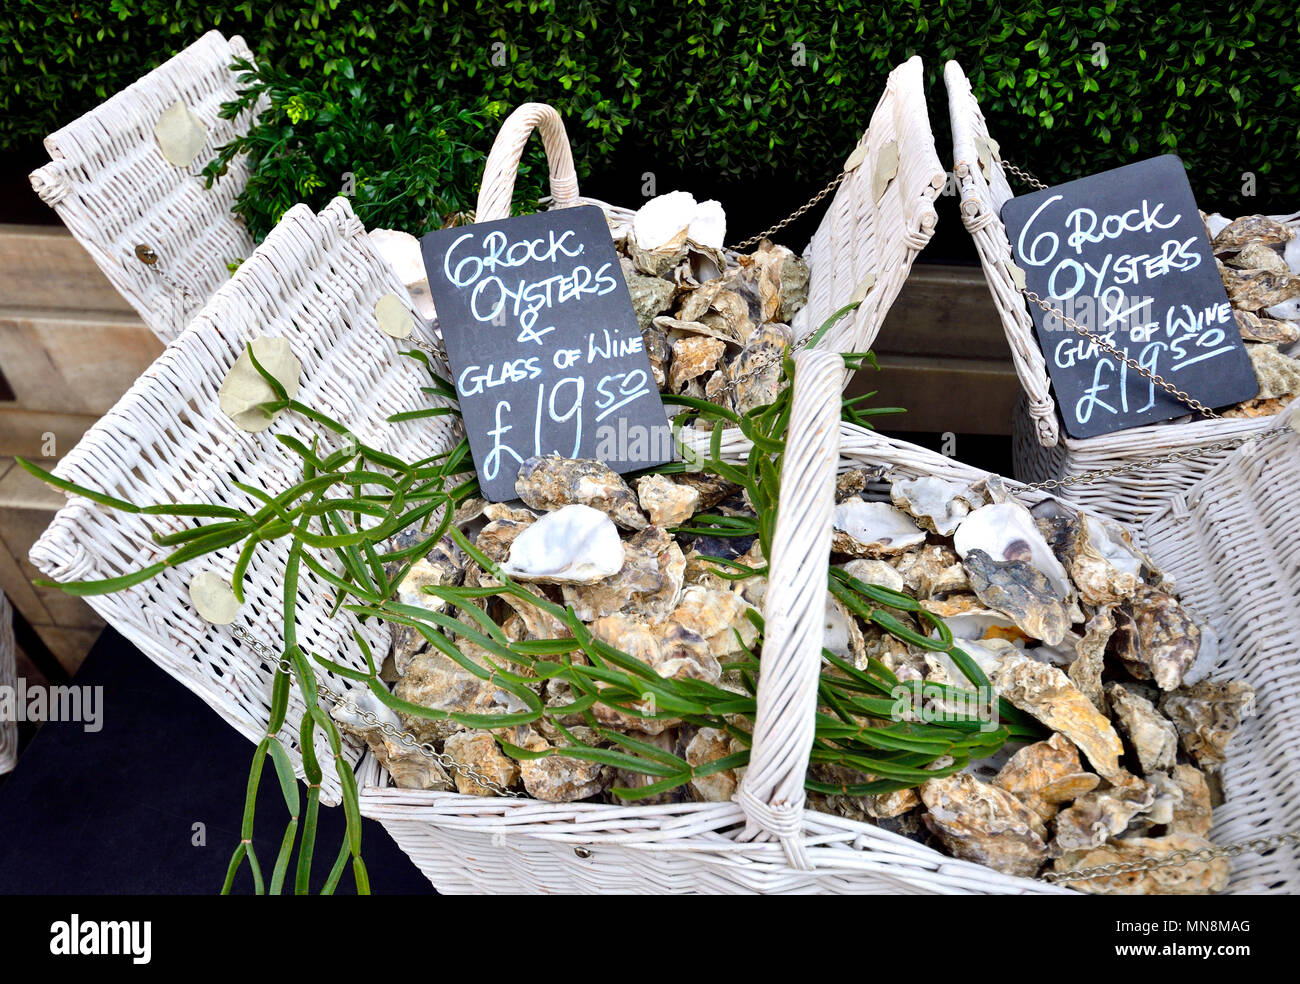 London, England, UK. Baskets of oysters outside the Caviar House and Prunier, 161 Piccadilly - Stock Image